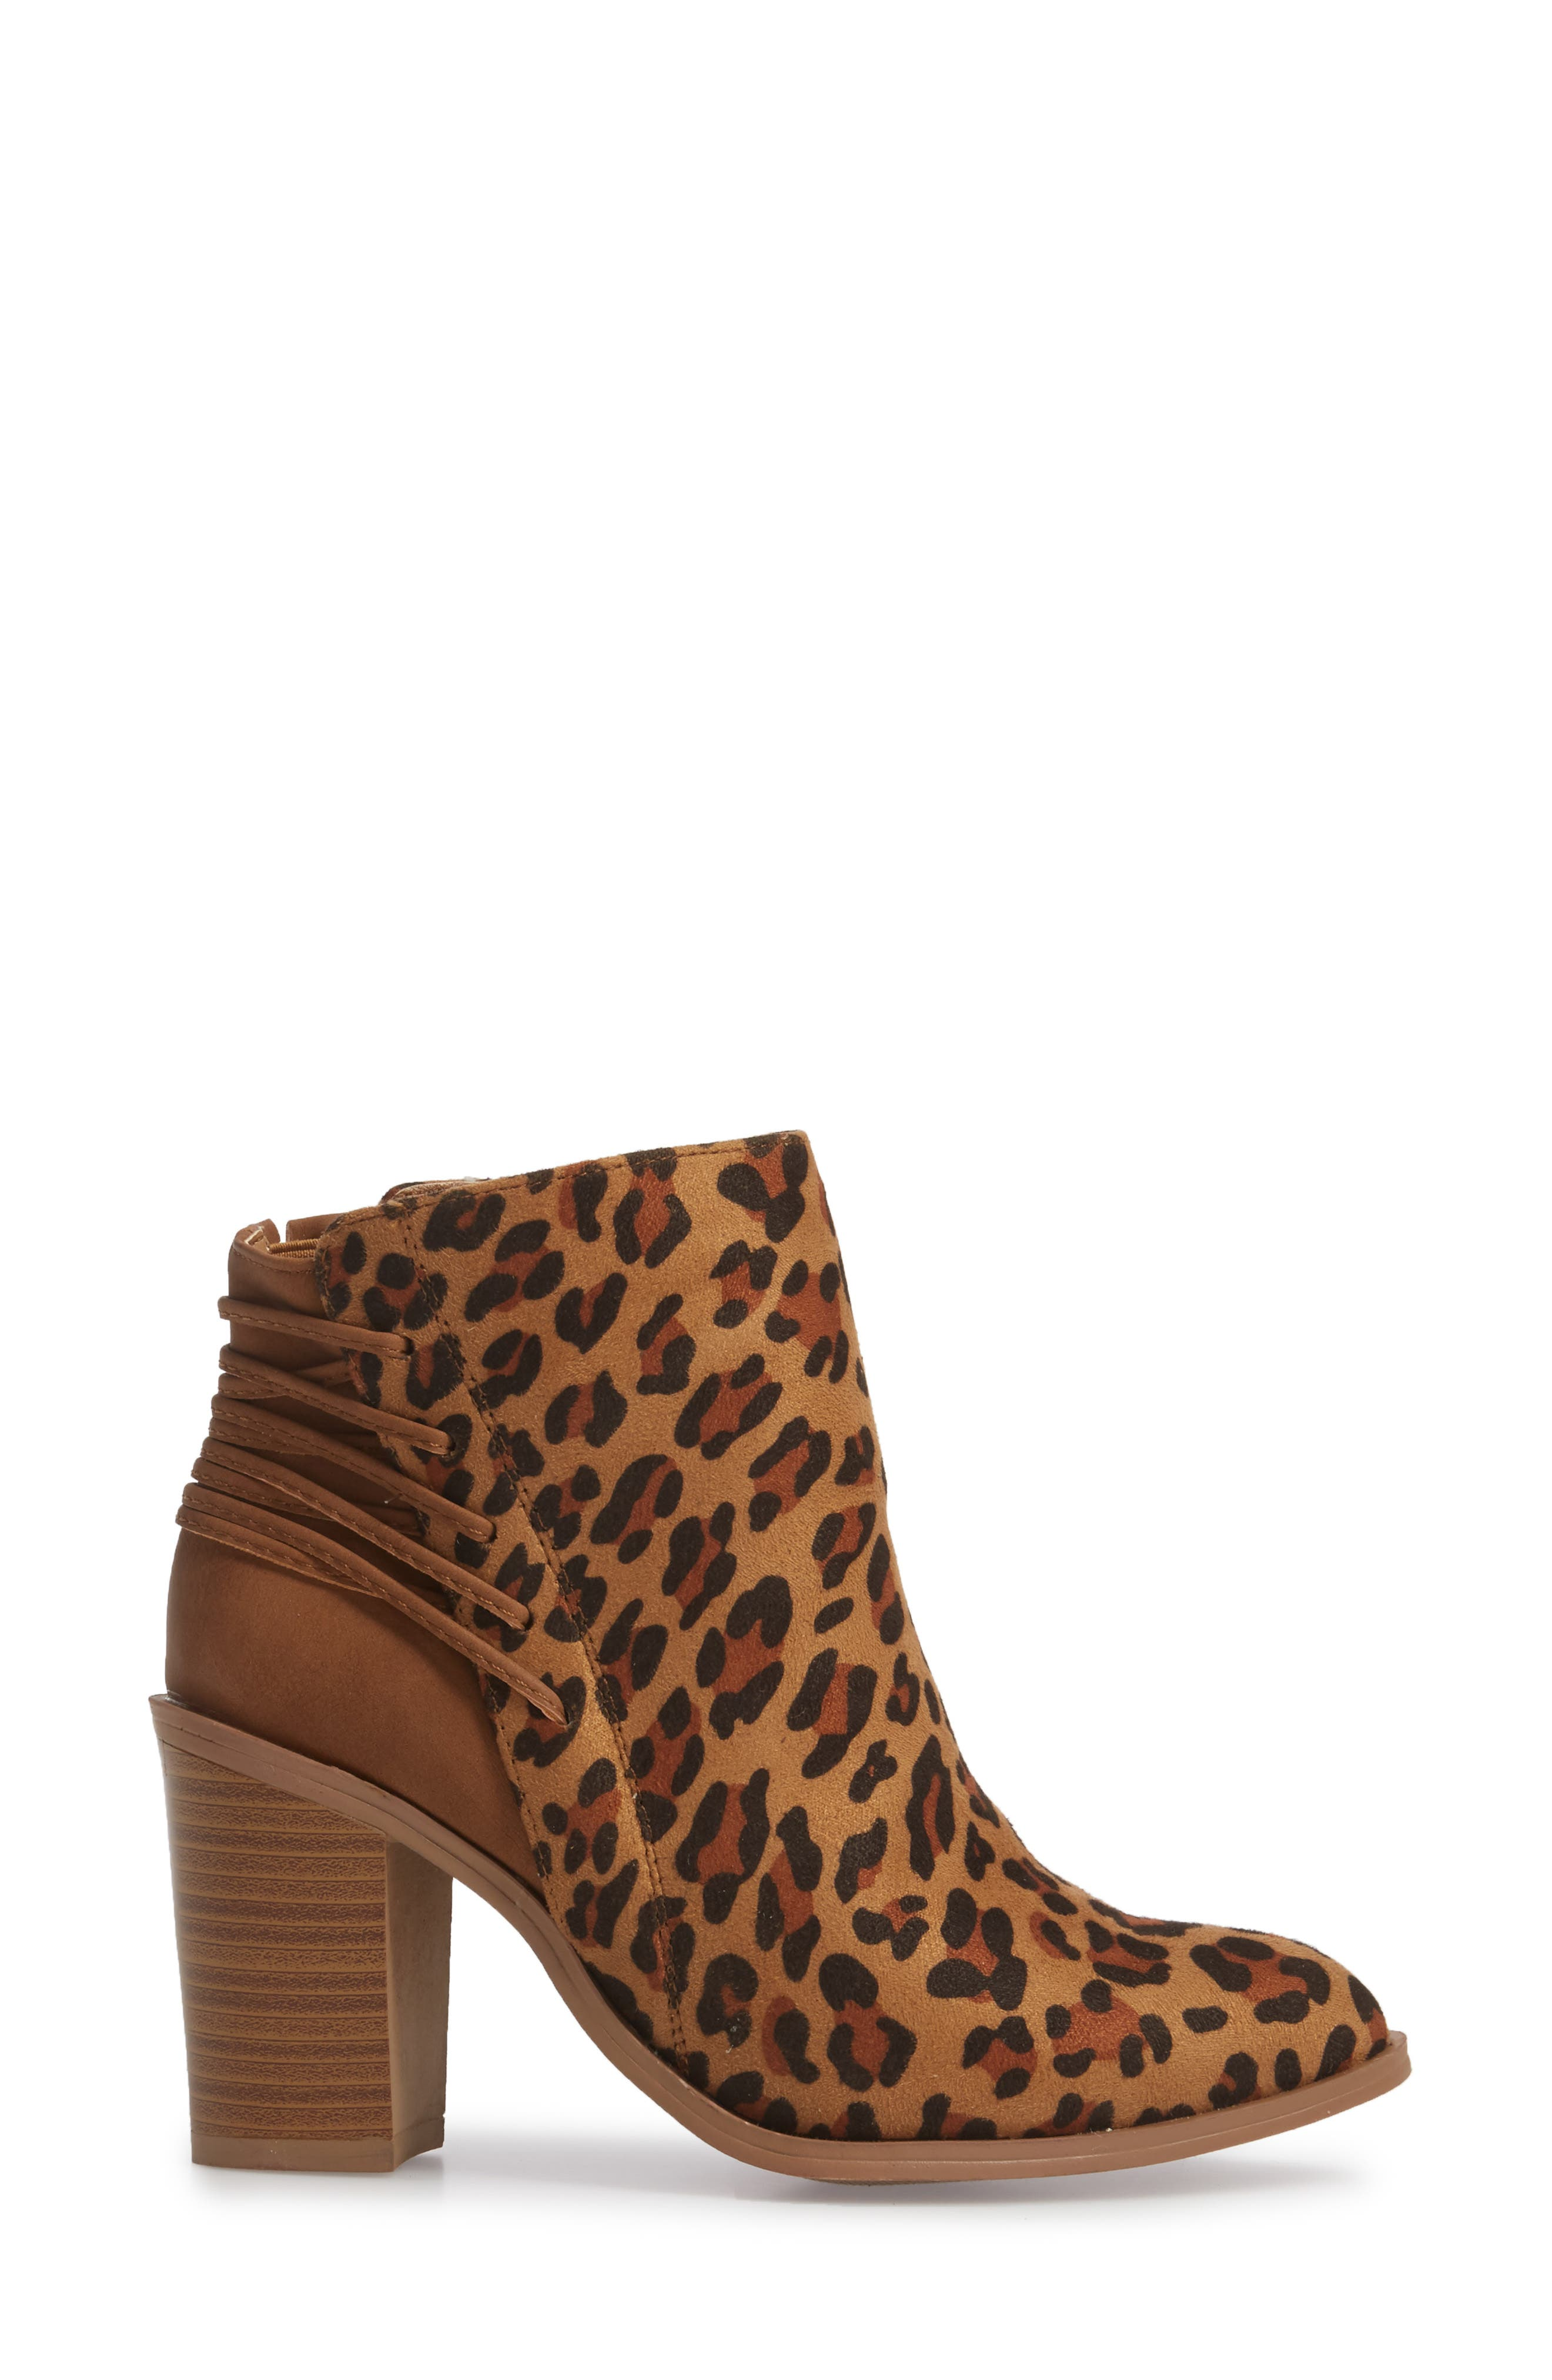 Lacey Leopard Bootie,                             Alternate thumbnail 3, color,                             Tan Leopard Suede Leather